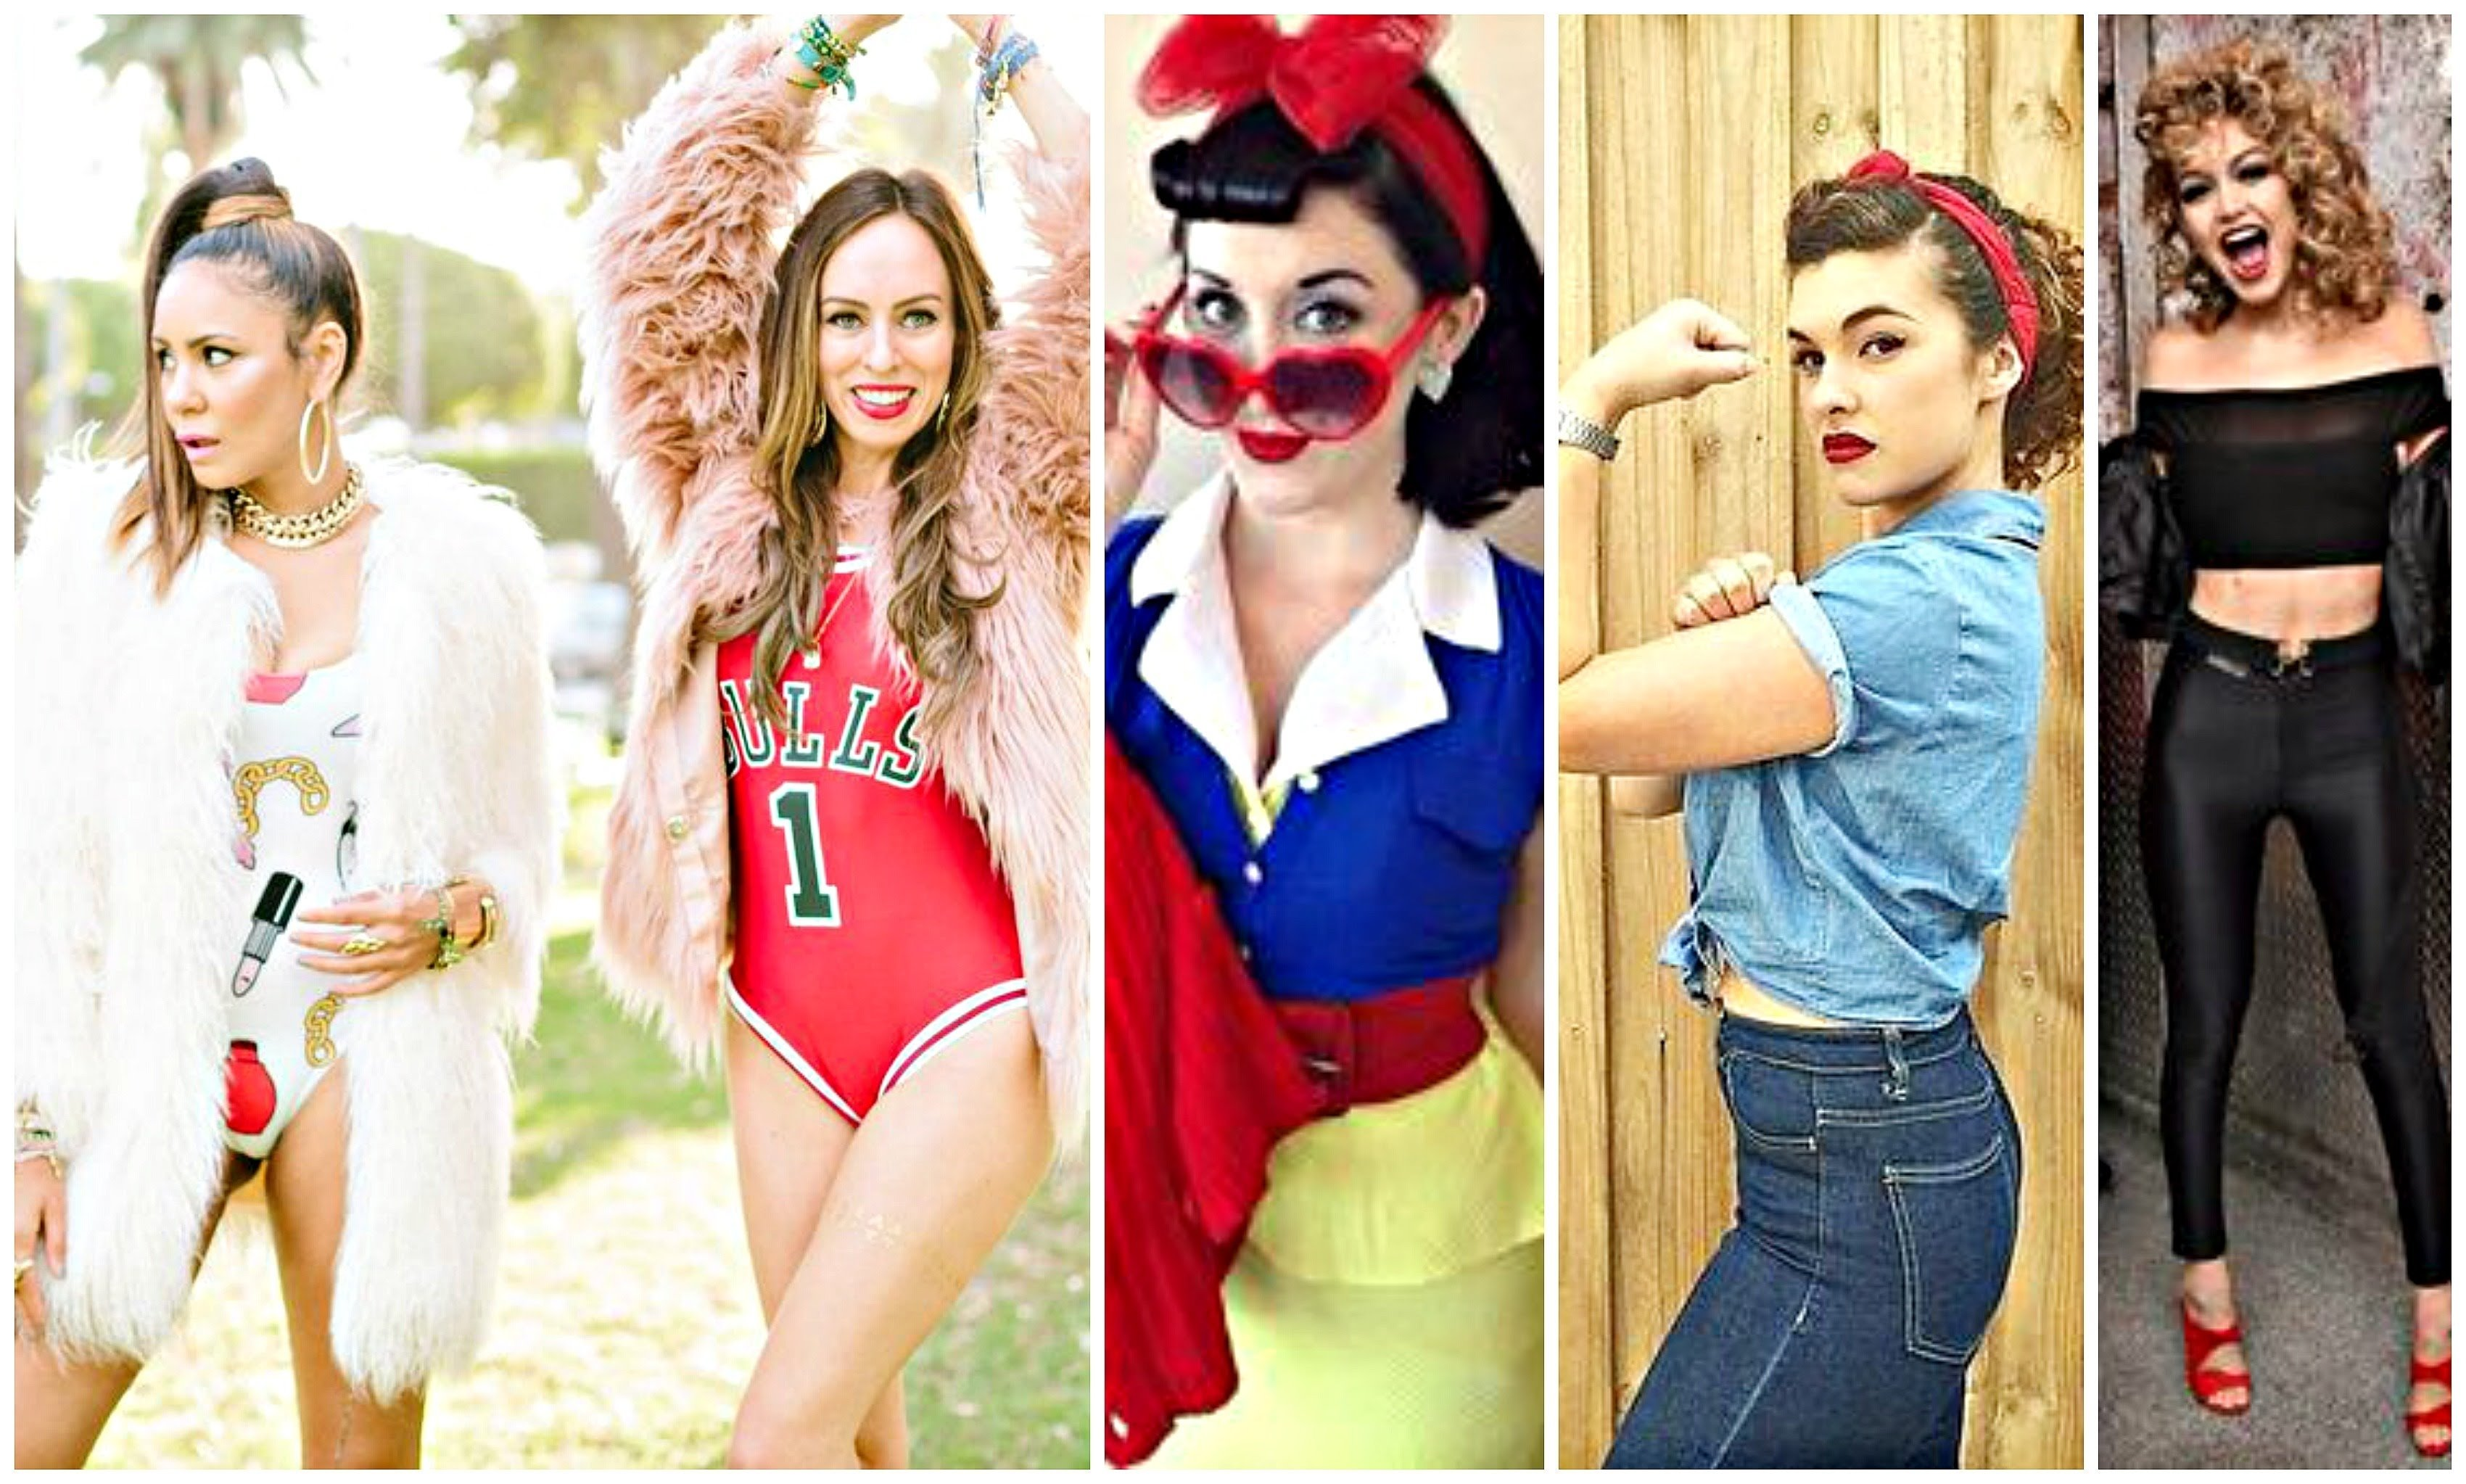 10 Stylish Ideas For Halloween Costumes For Women top halloween costume ideas for women youtube 6 2021